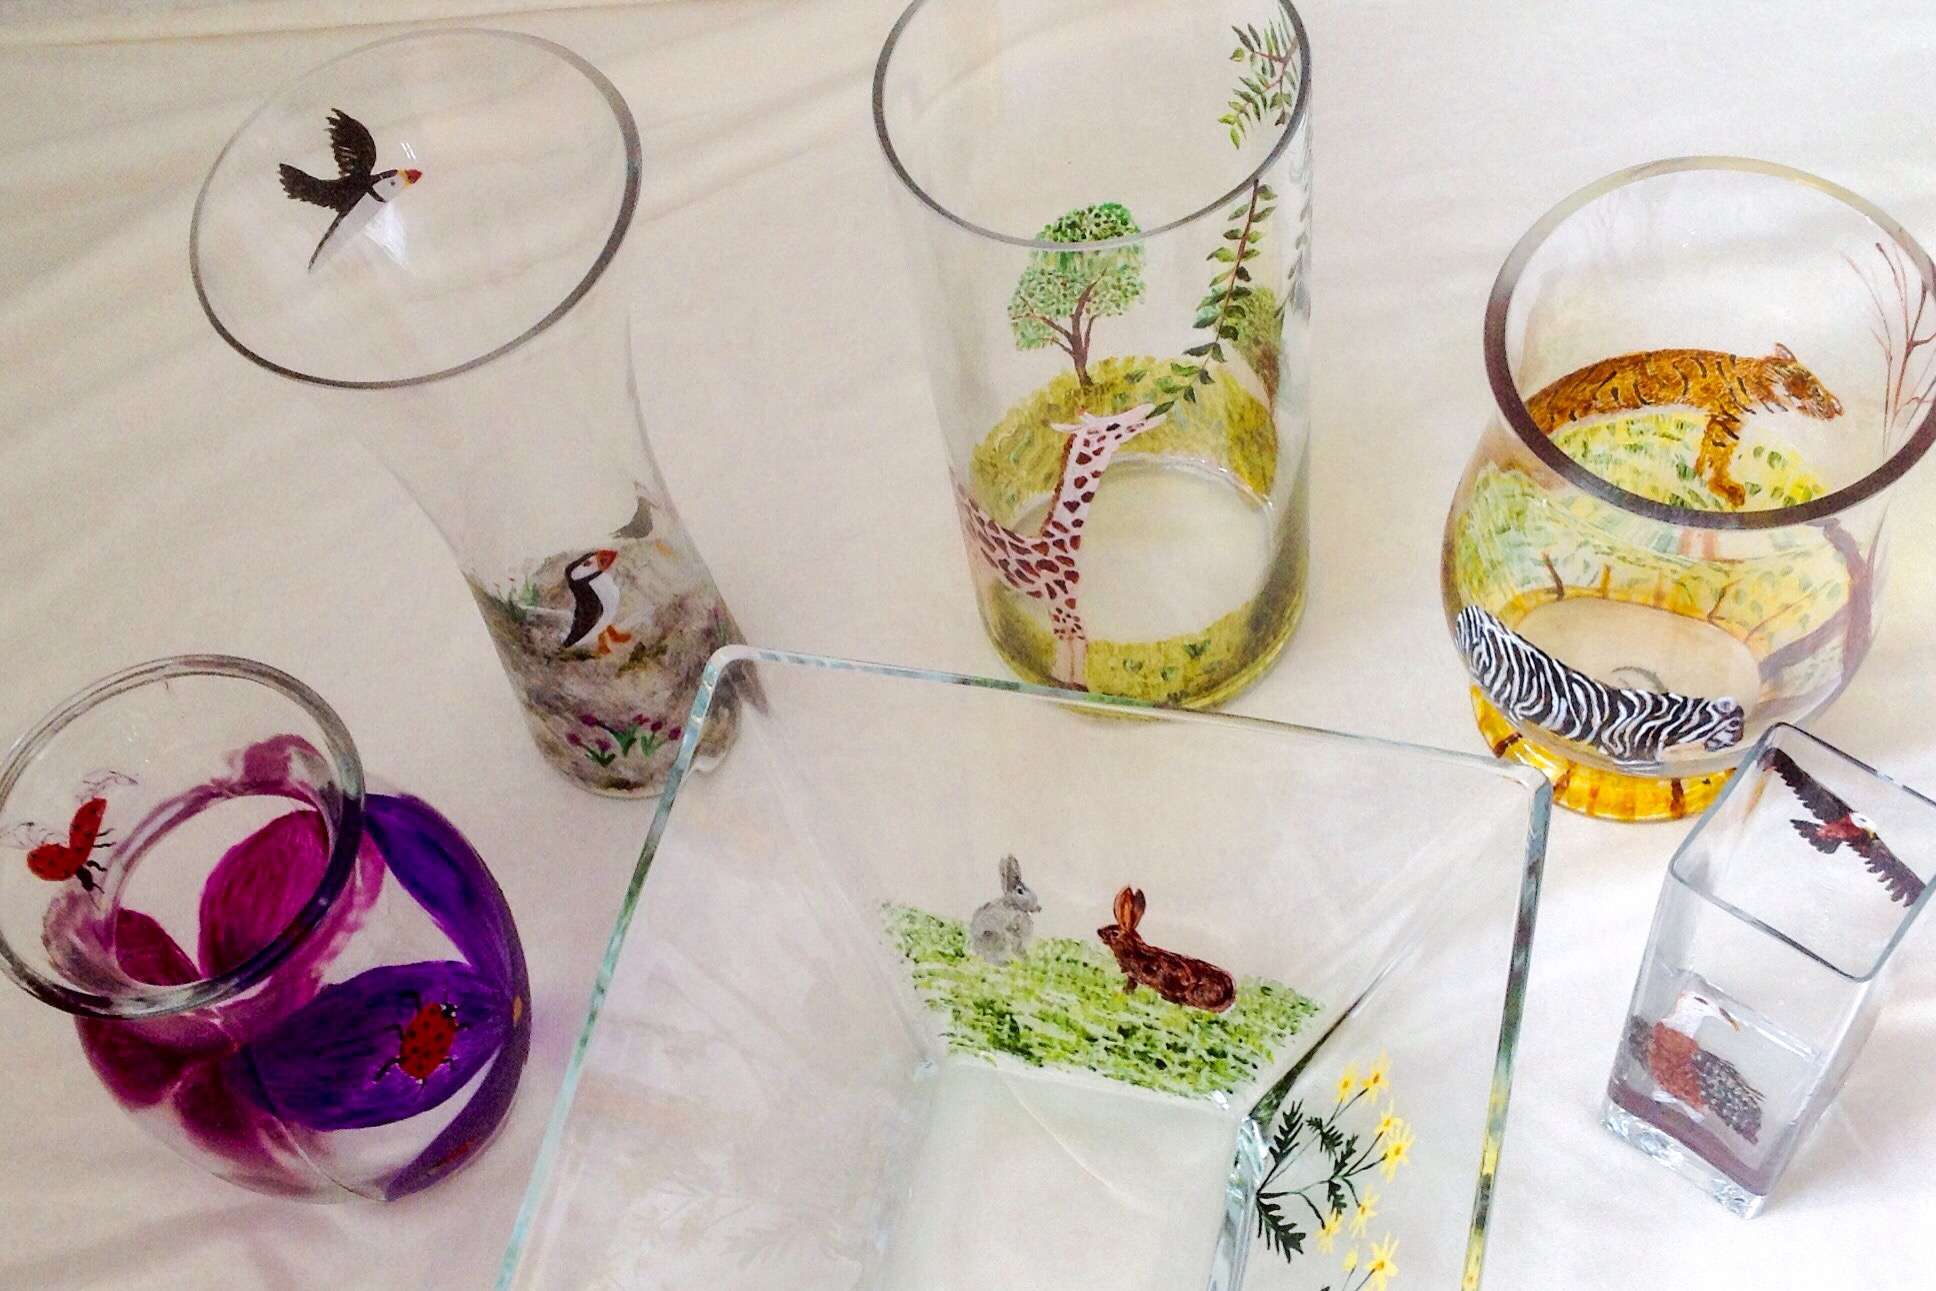 Collection of Glassware Paintings for an Animal Alphabet Project